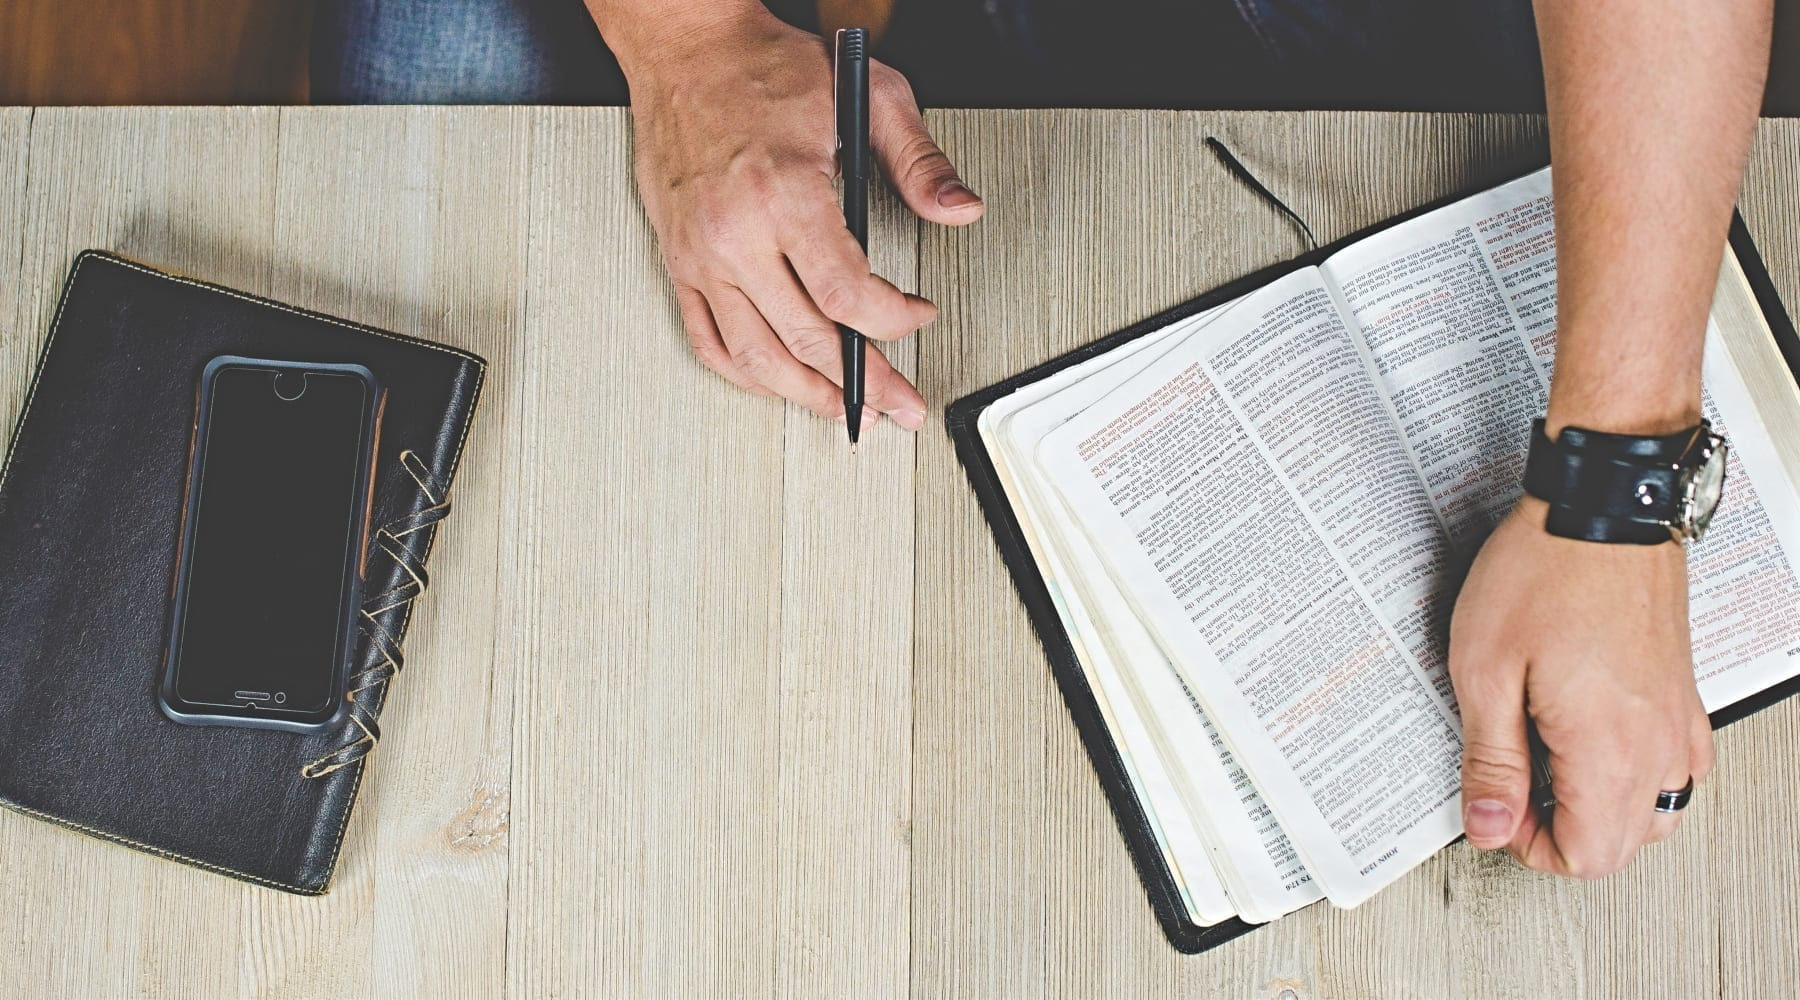 Before Enacting Biblical Literacy Classes, We Need Biblical Integrity